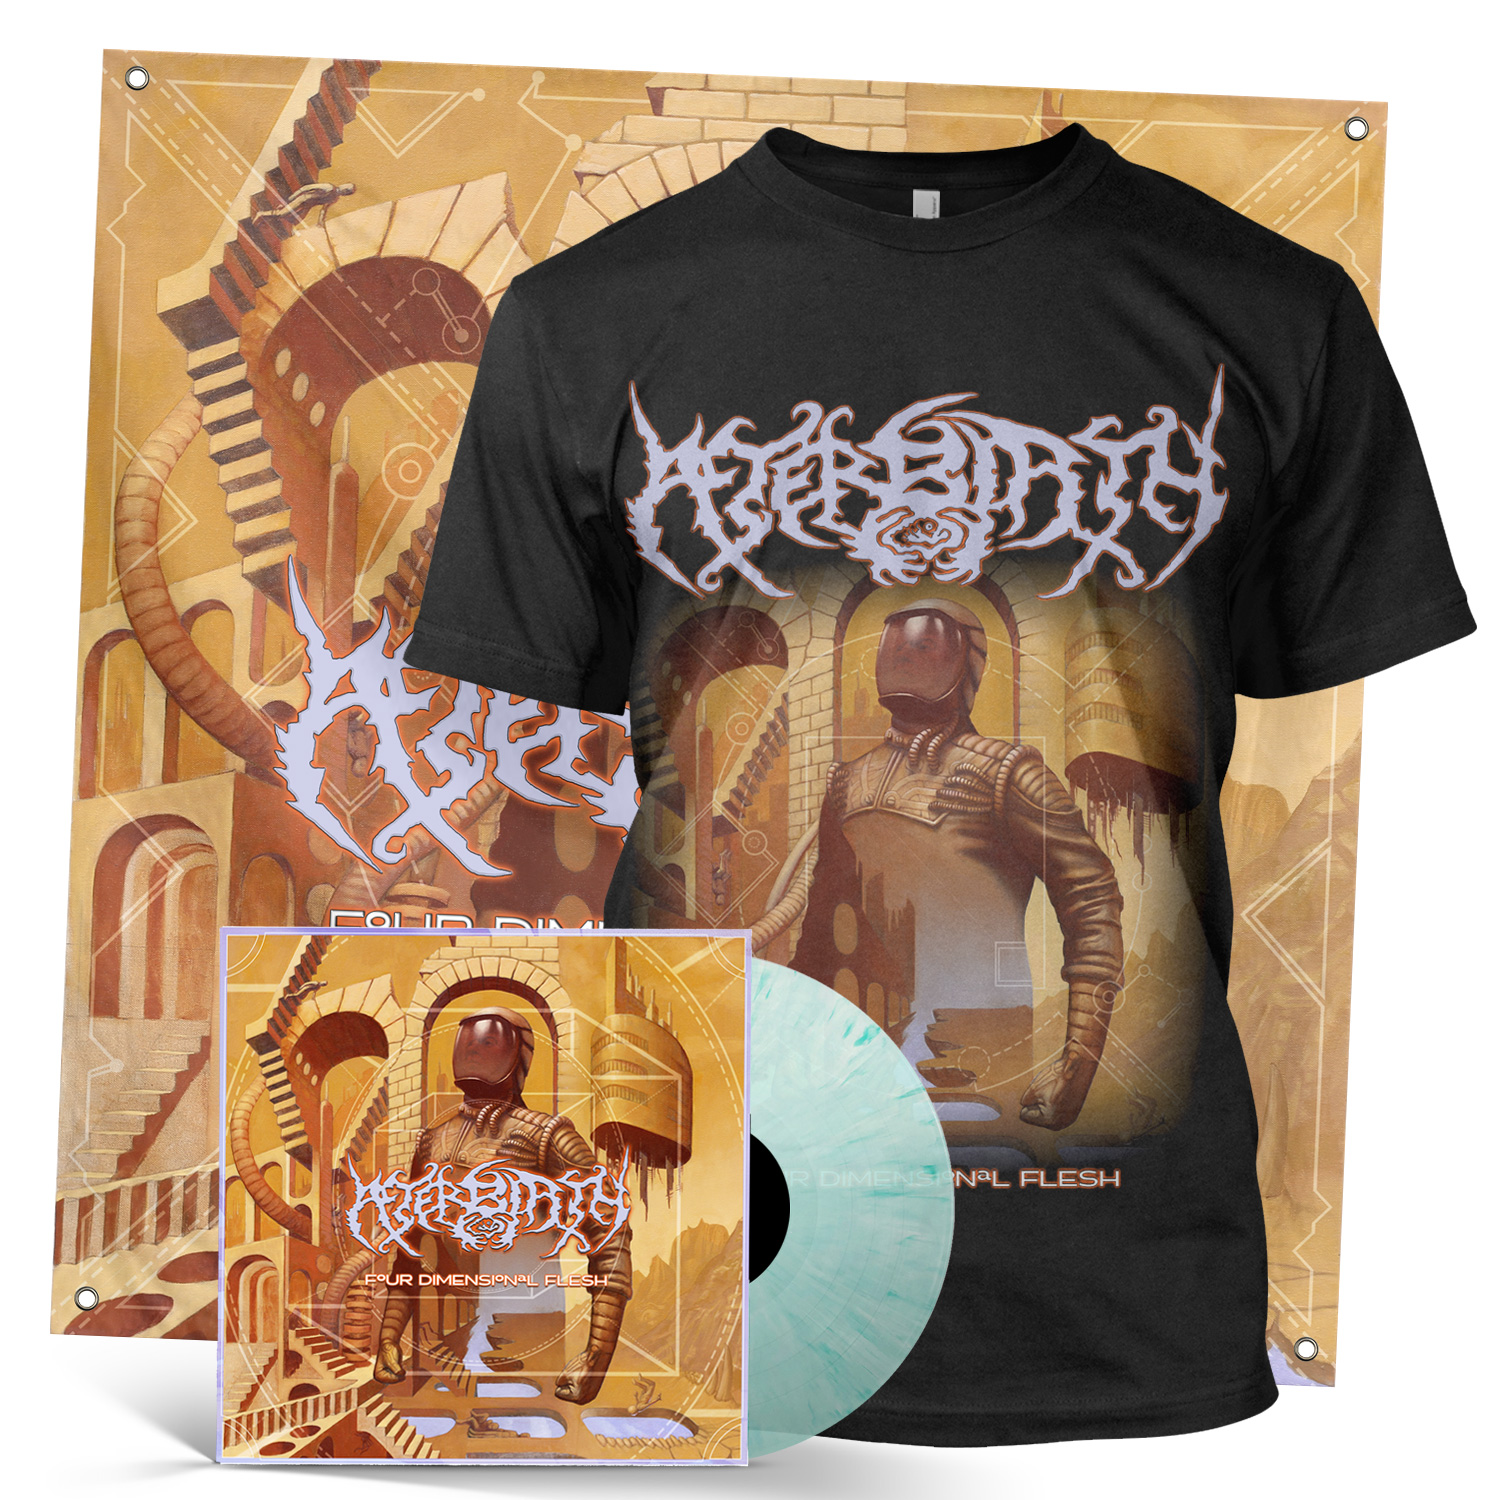 Four Dimensional Flesh LP + Tee Bundle